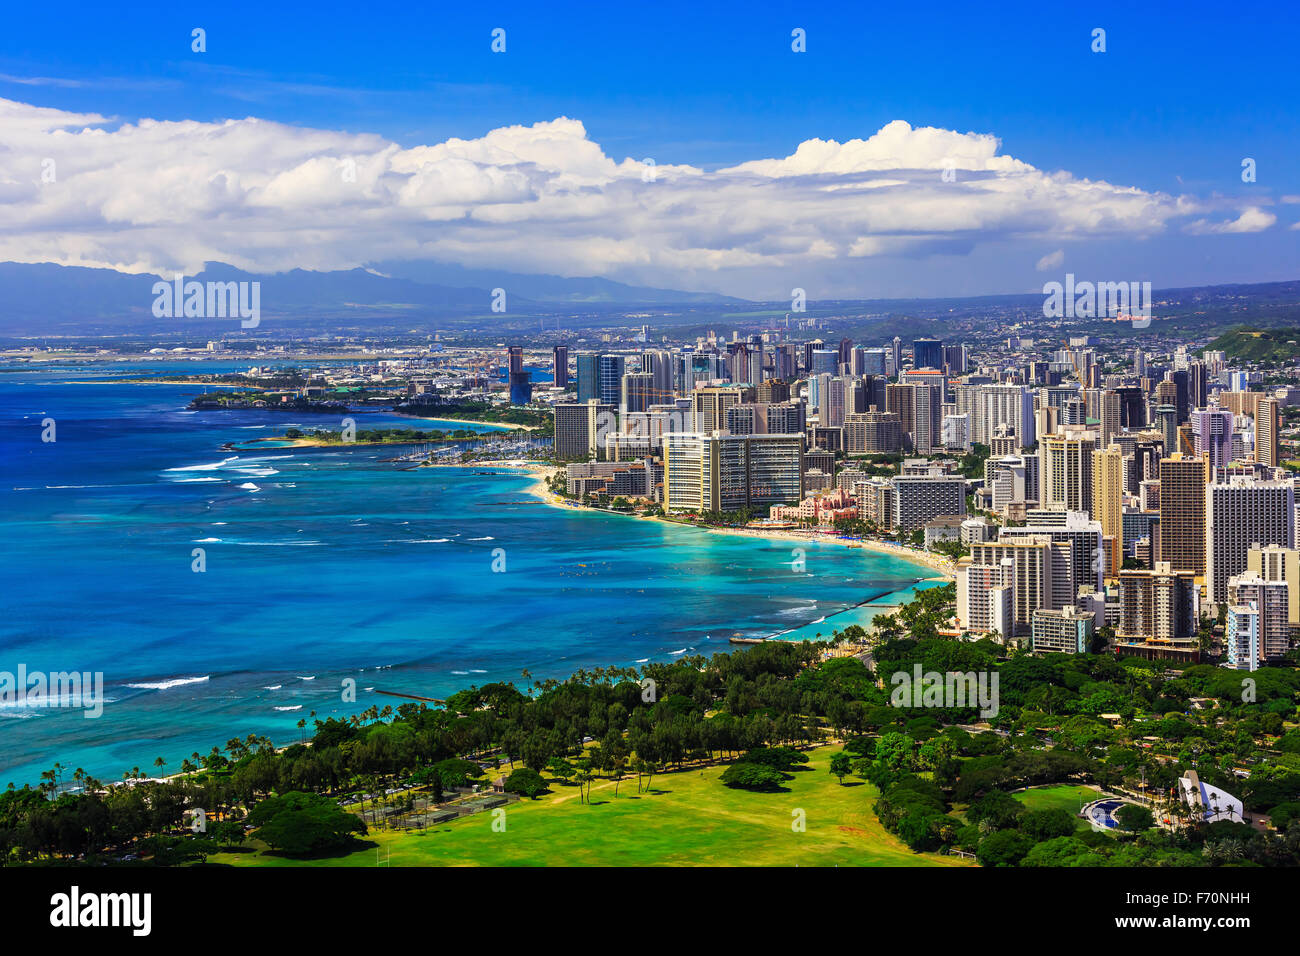 Skyline of Honolulu, Hawaii and the surrounding area including the hotels and buildings on Waikiki Beach - Stock Image